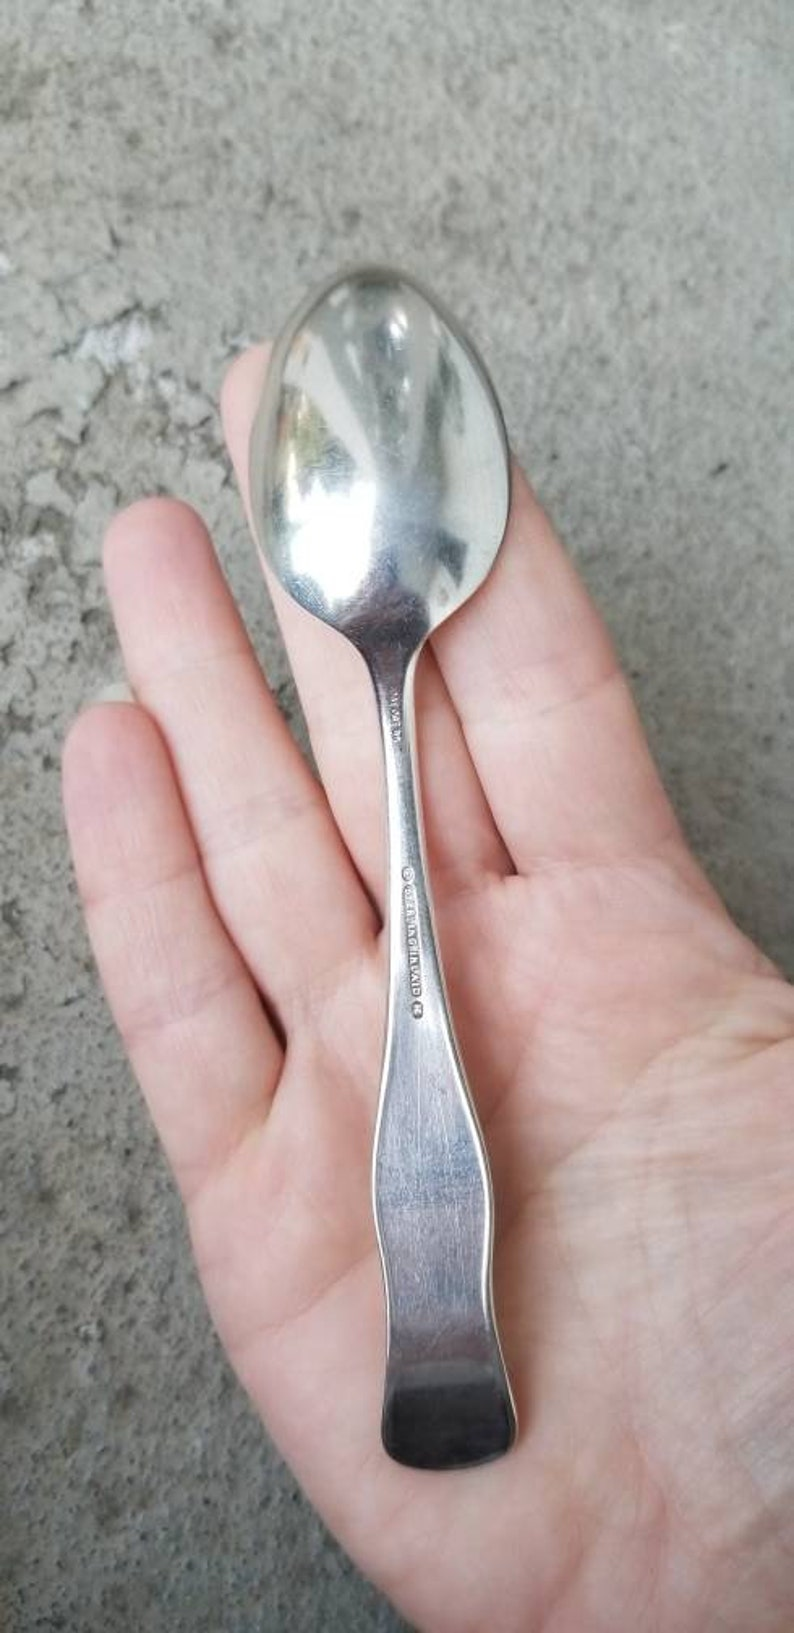 5 78 Inches 1888 Pat Oct Antique Teaspoon Warner by Holmes /& Edwards Silver Plated K Monogram.